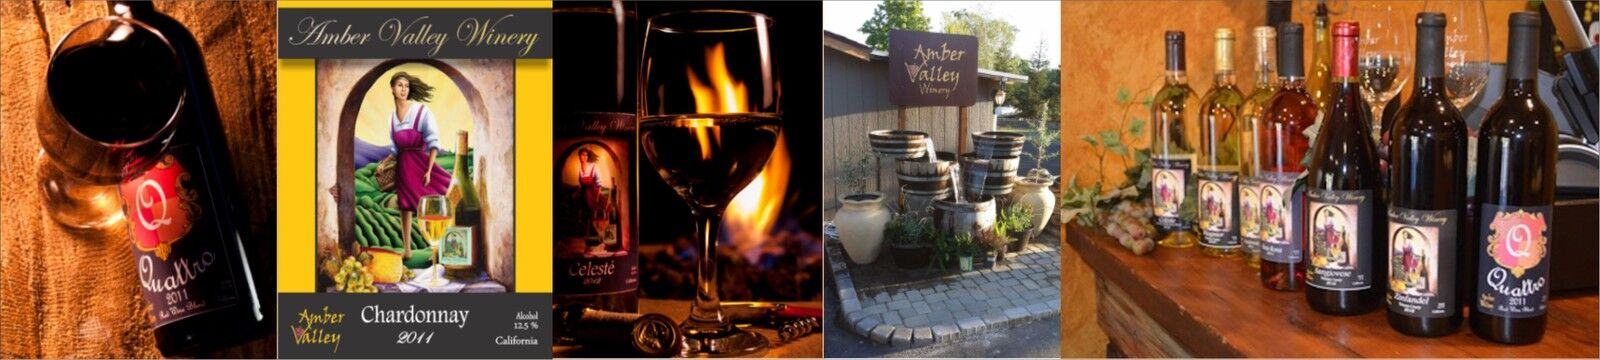 Amber Valley Winery